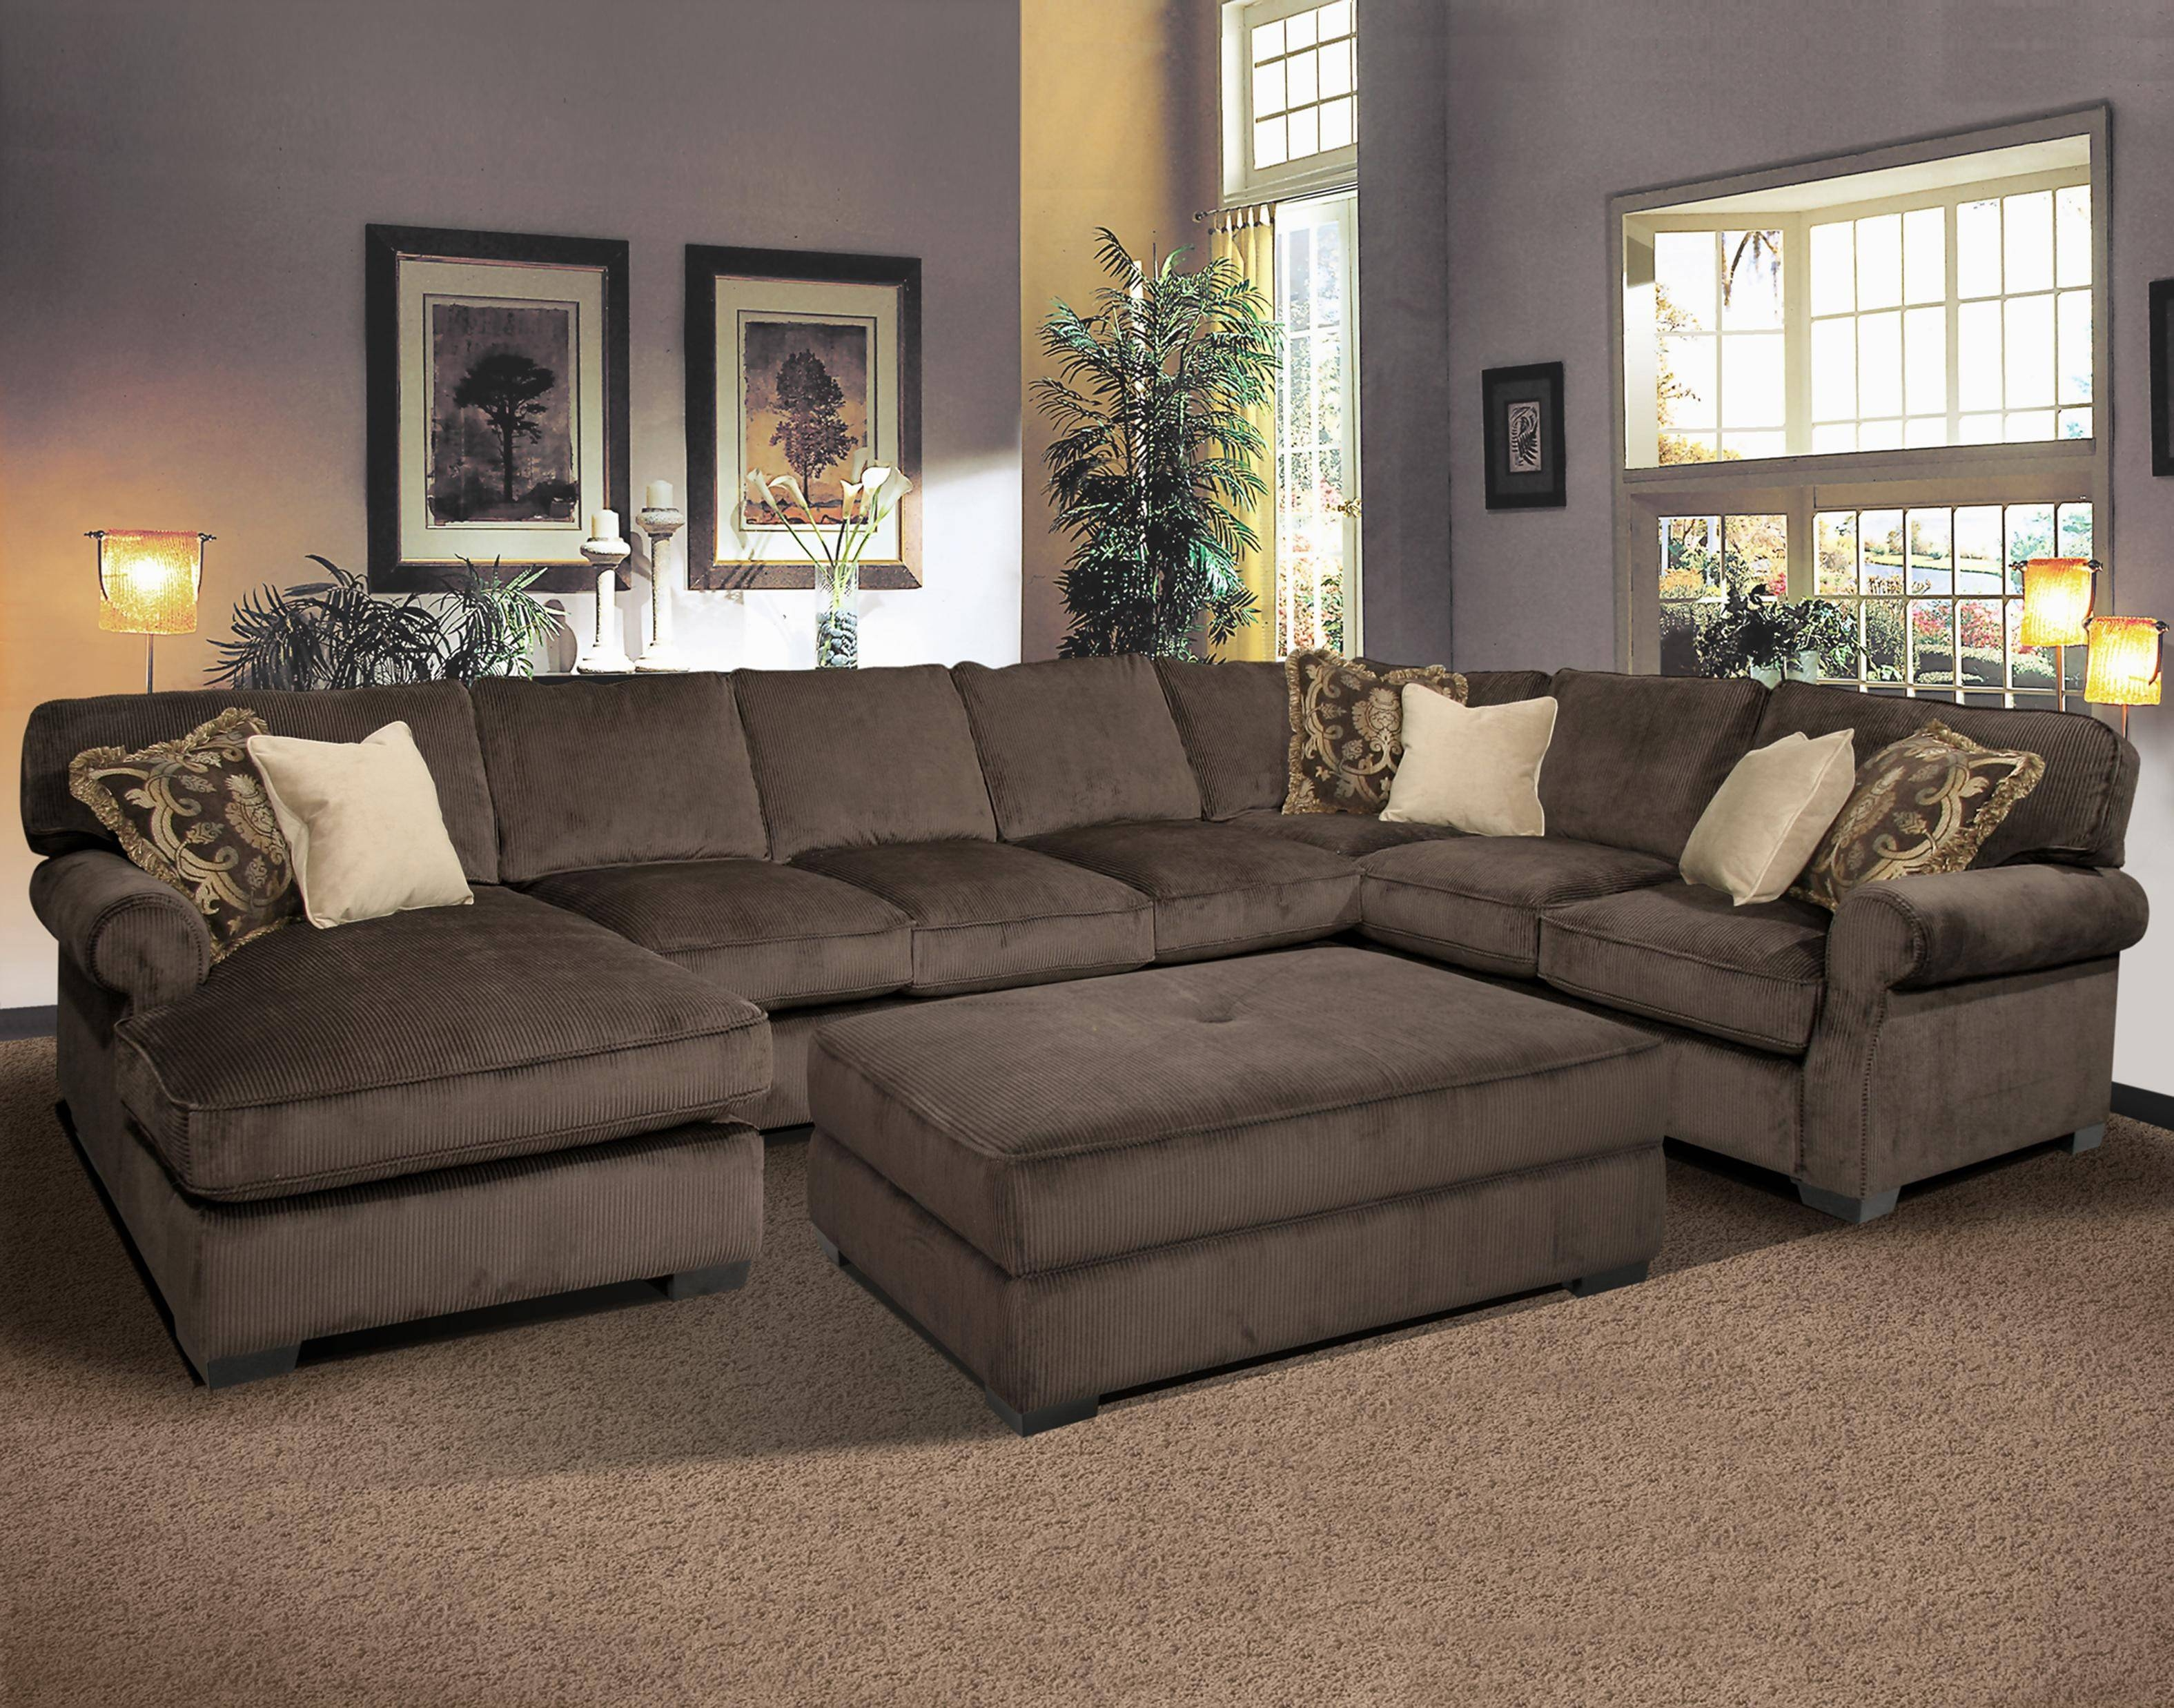 Sofas Center : Cozy Sectional Sofa With Chaise And Ottoman About with Down Filled Sofas and Sectionals (Image 19 of 30)